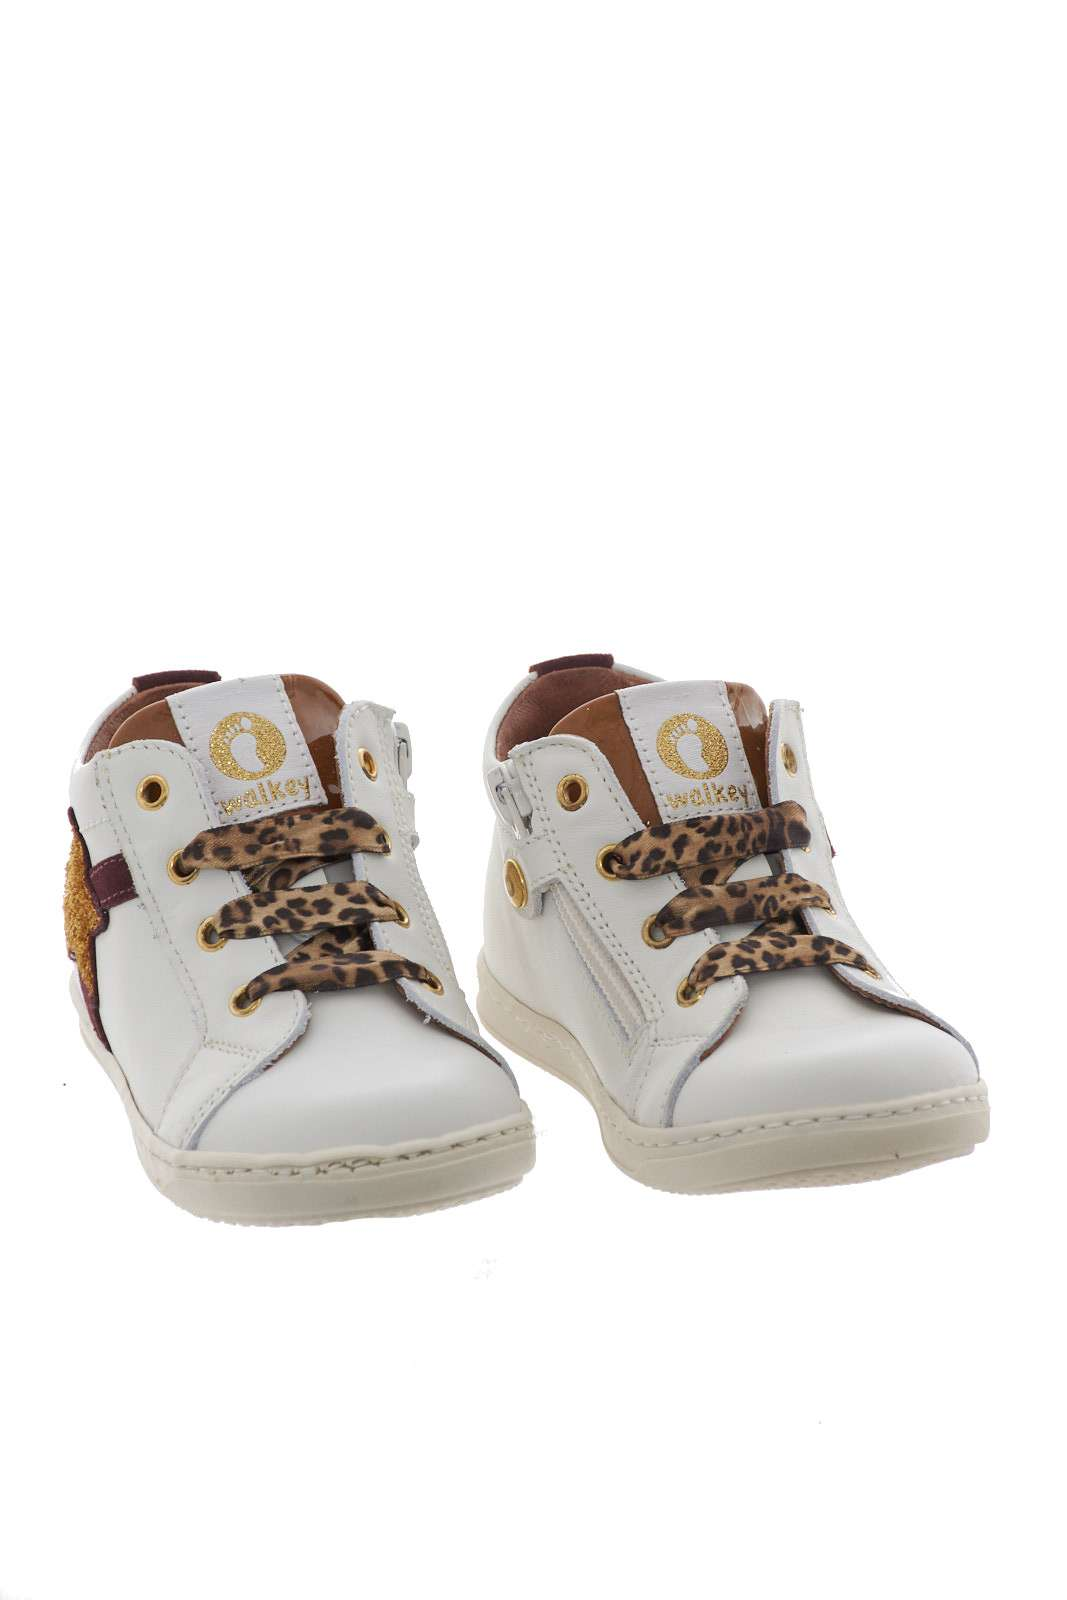 https://www.parmax.com/media/catalog/product/A/I/AI-outlet_parmax-scarpa-bambina-Walkey-Piccoli-Passi-Y21a440122-B.jpg